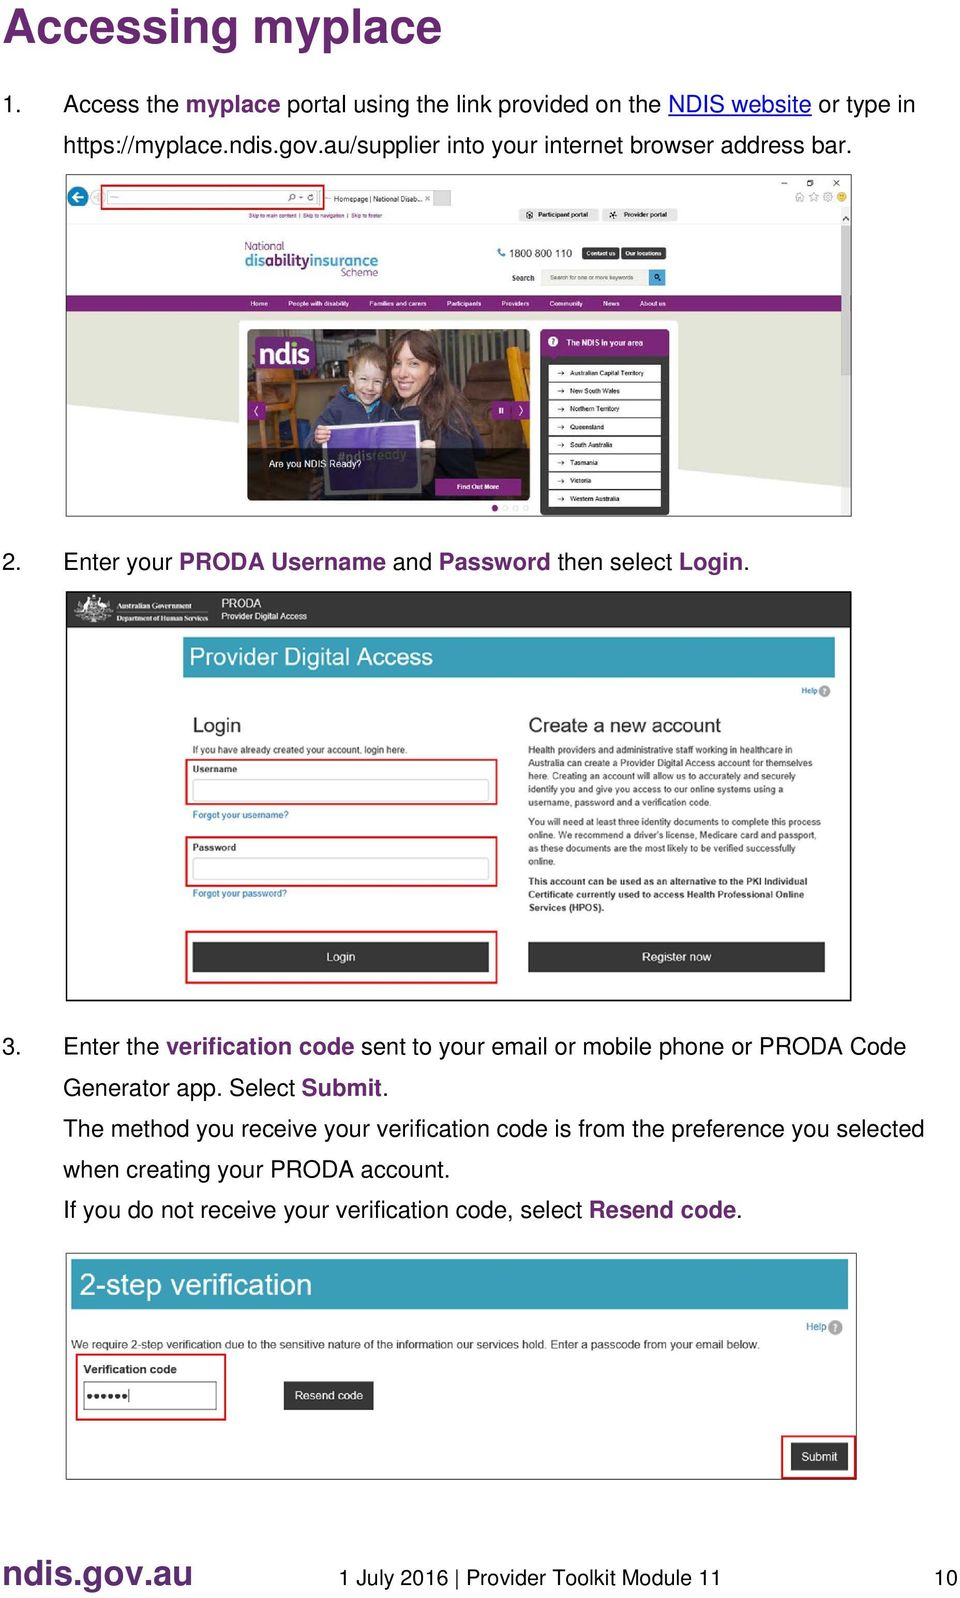 Enter the verification code sent to your email or mobile phone or PRODA Code Generator app. Select Submit.